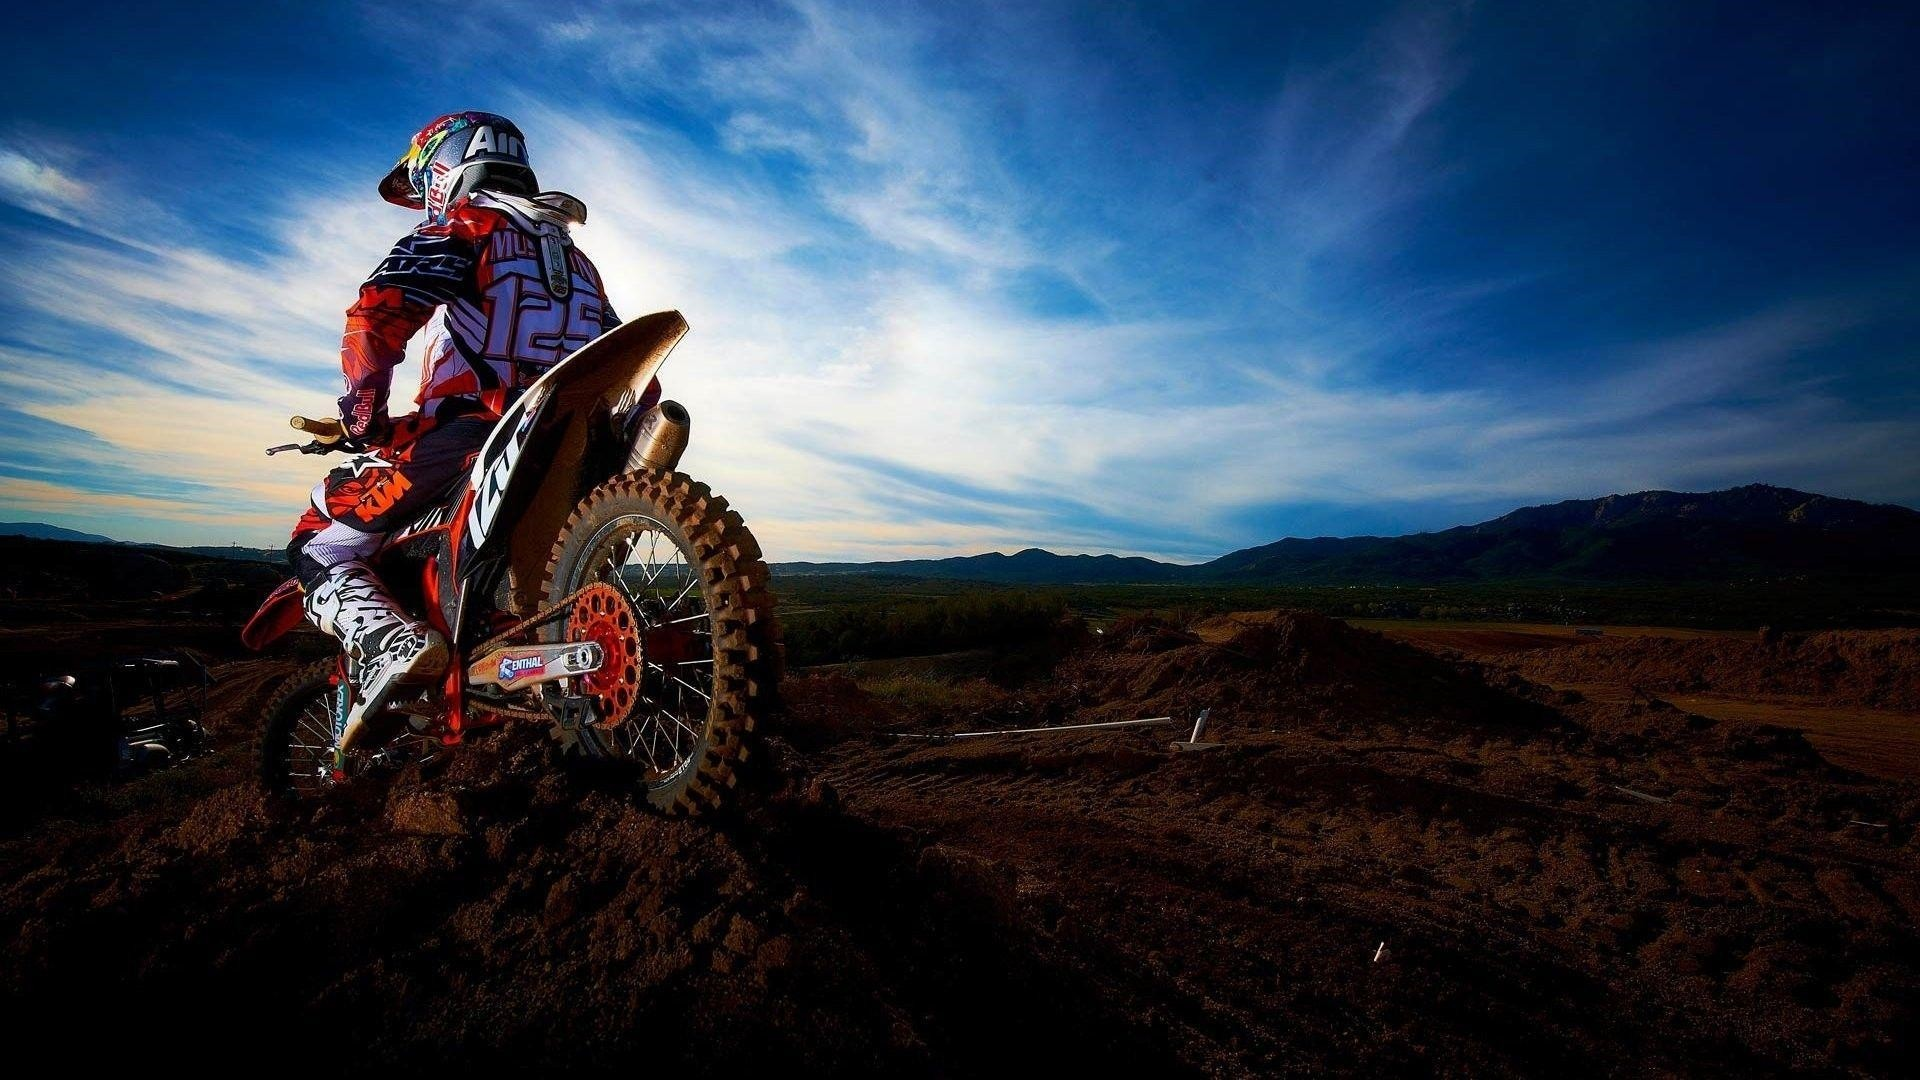 Dirt Bike Background Wallpaper